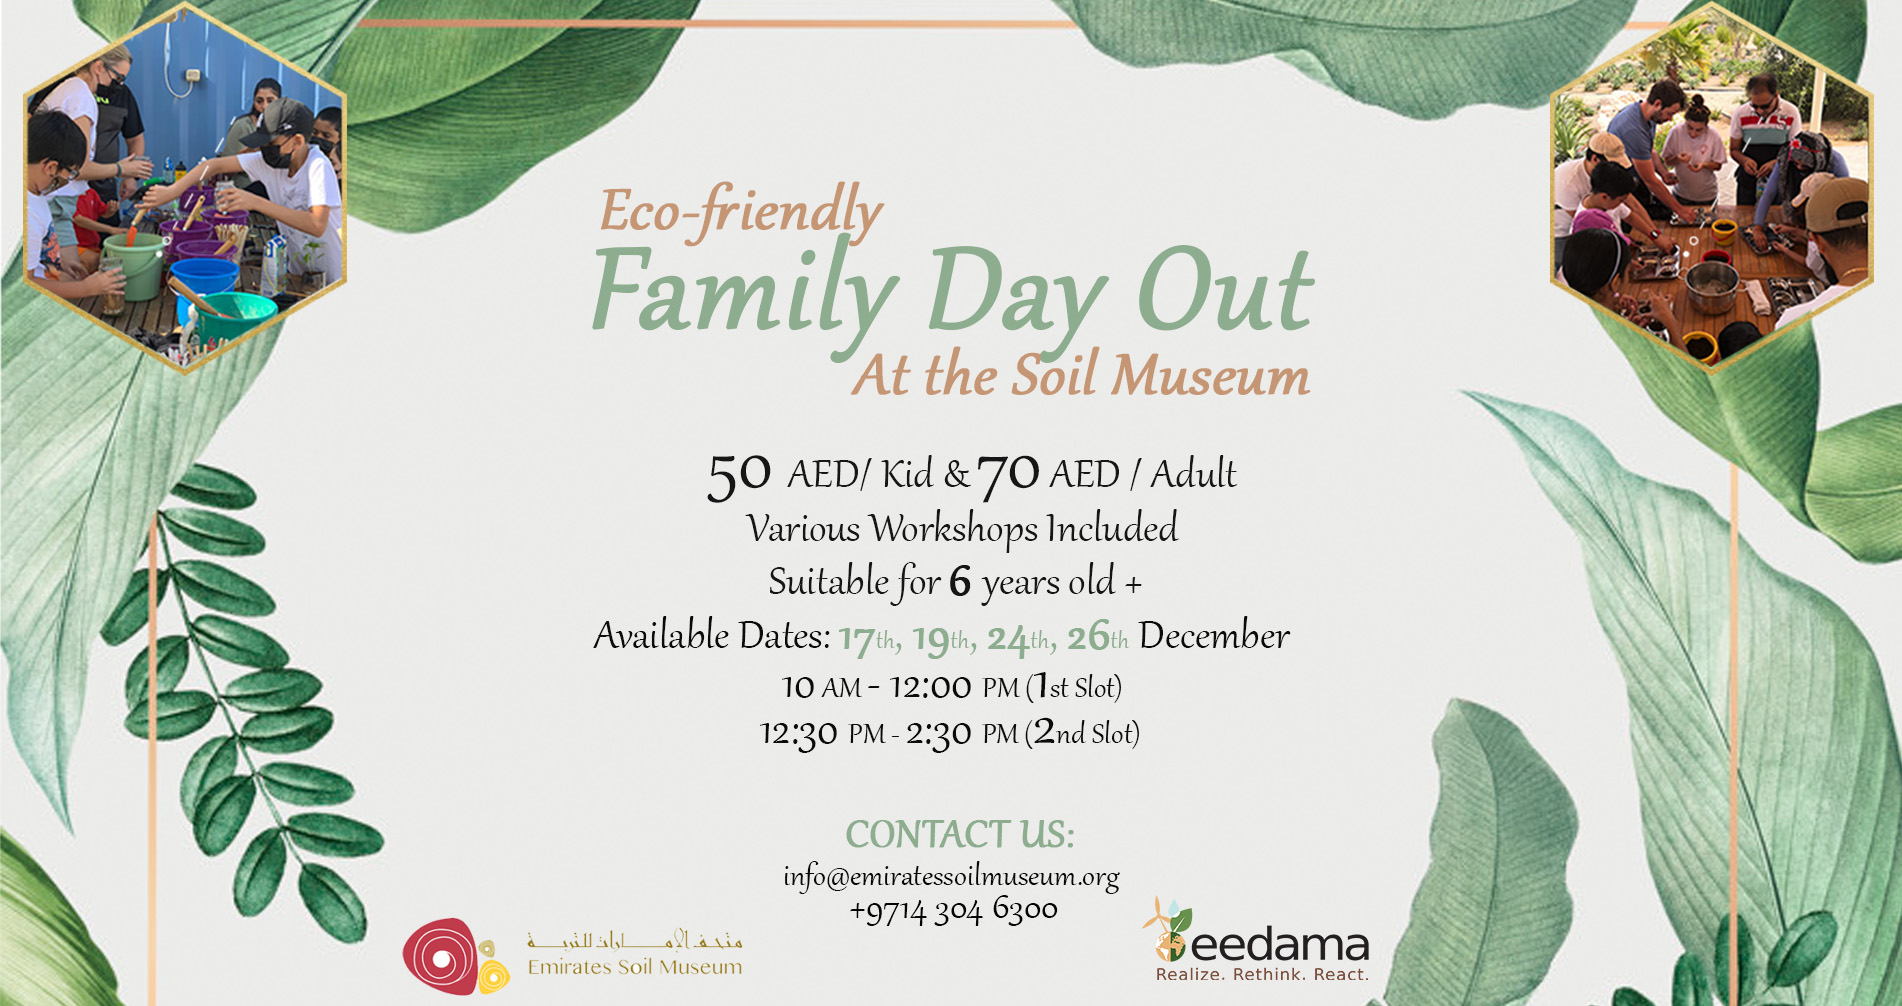 Eco-Friendly Family Day out at the Soil Museum